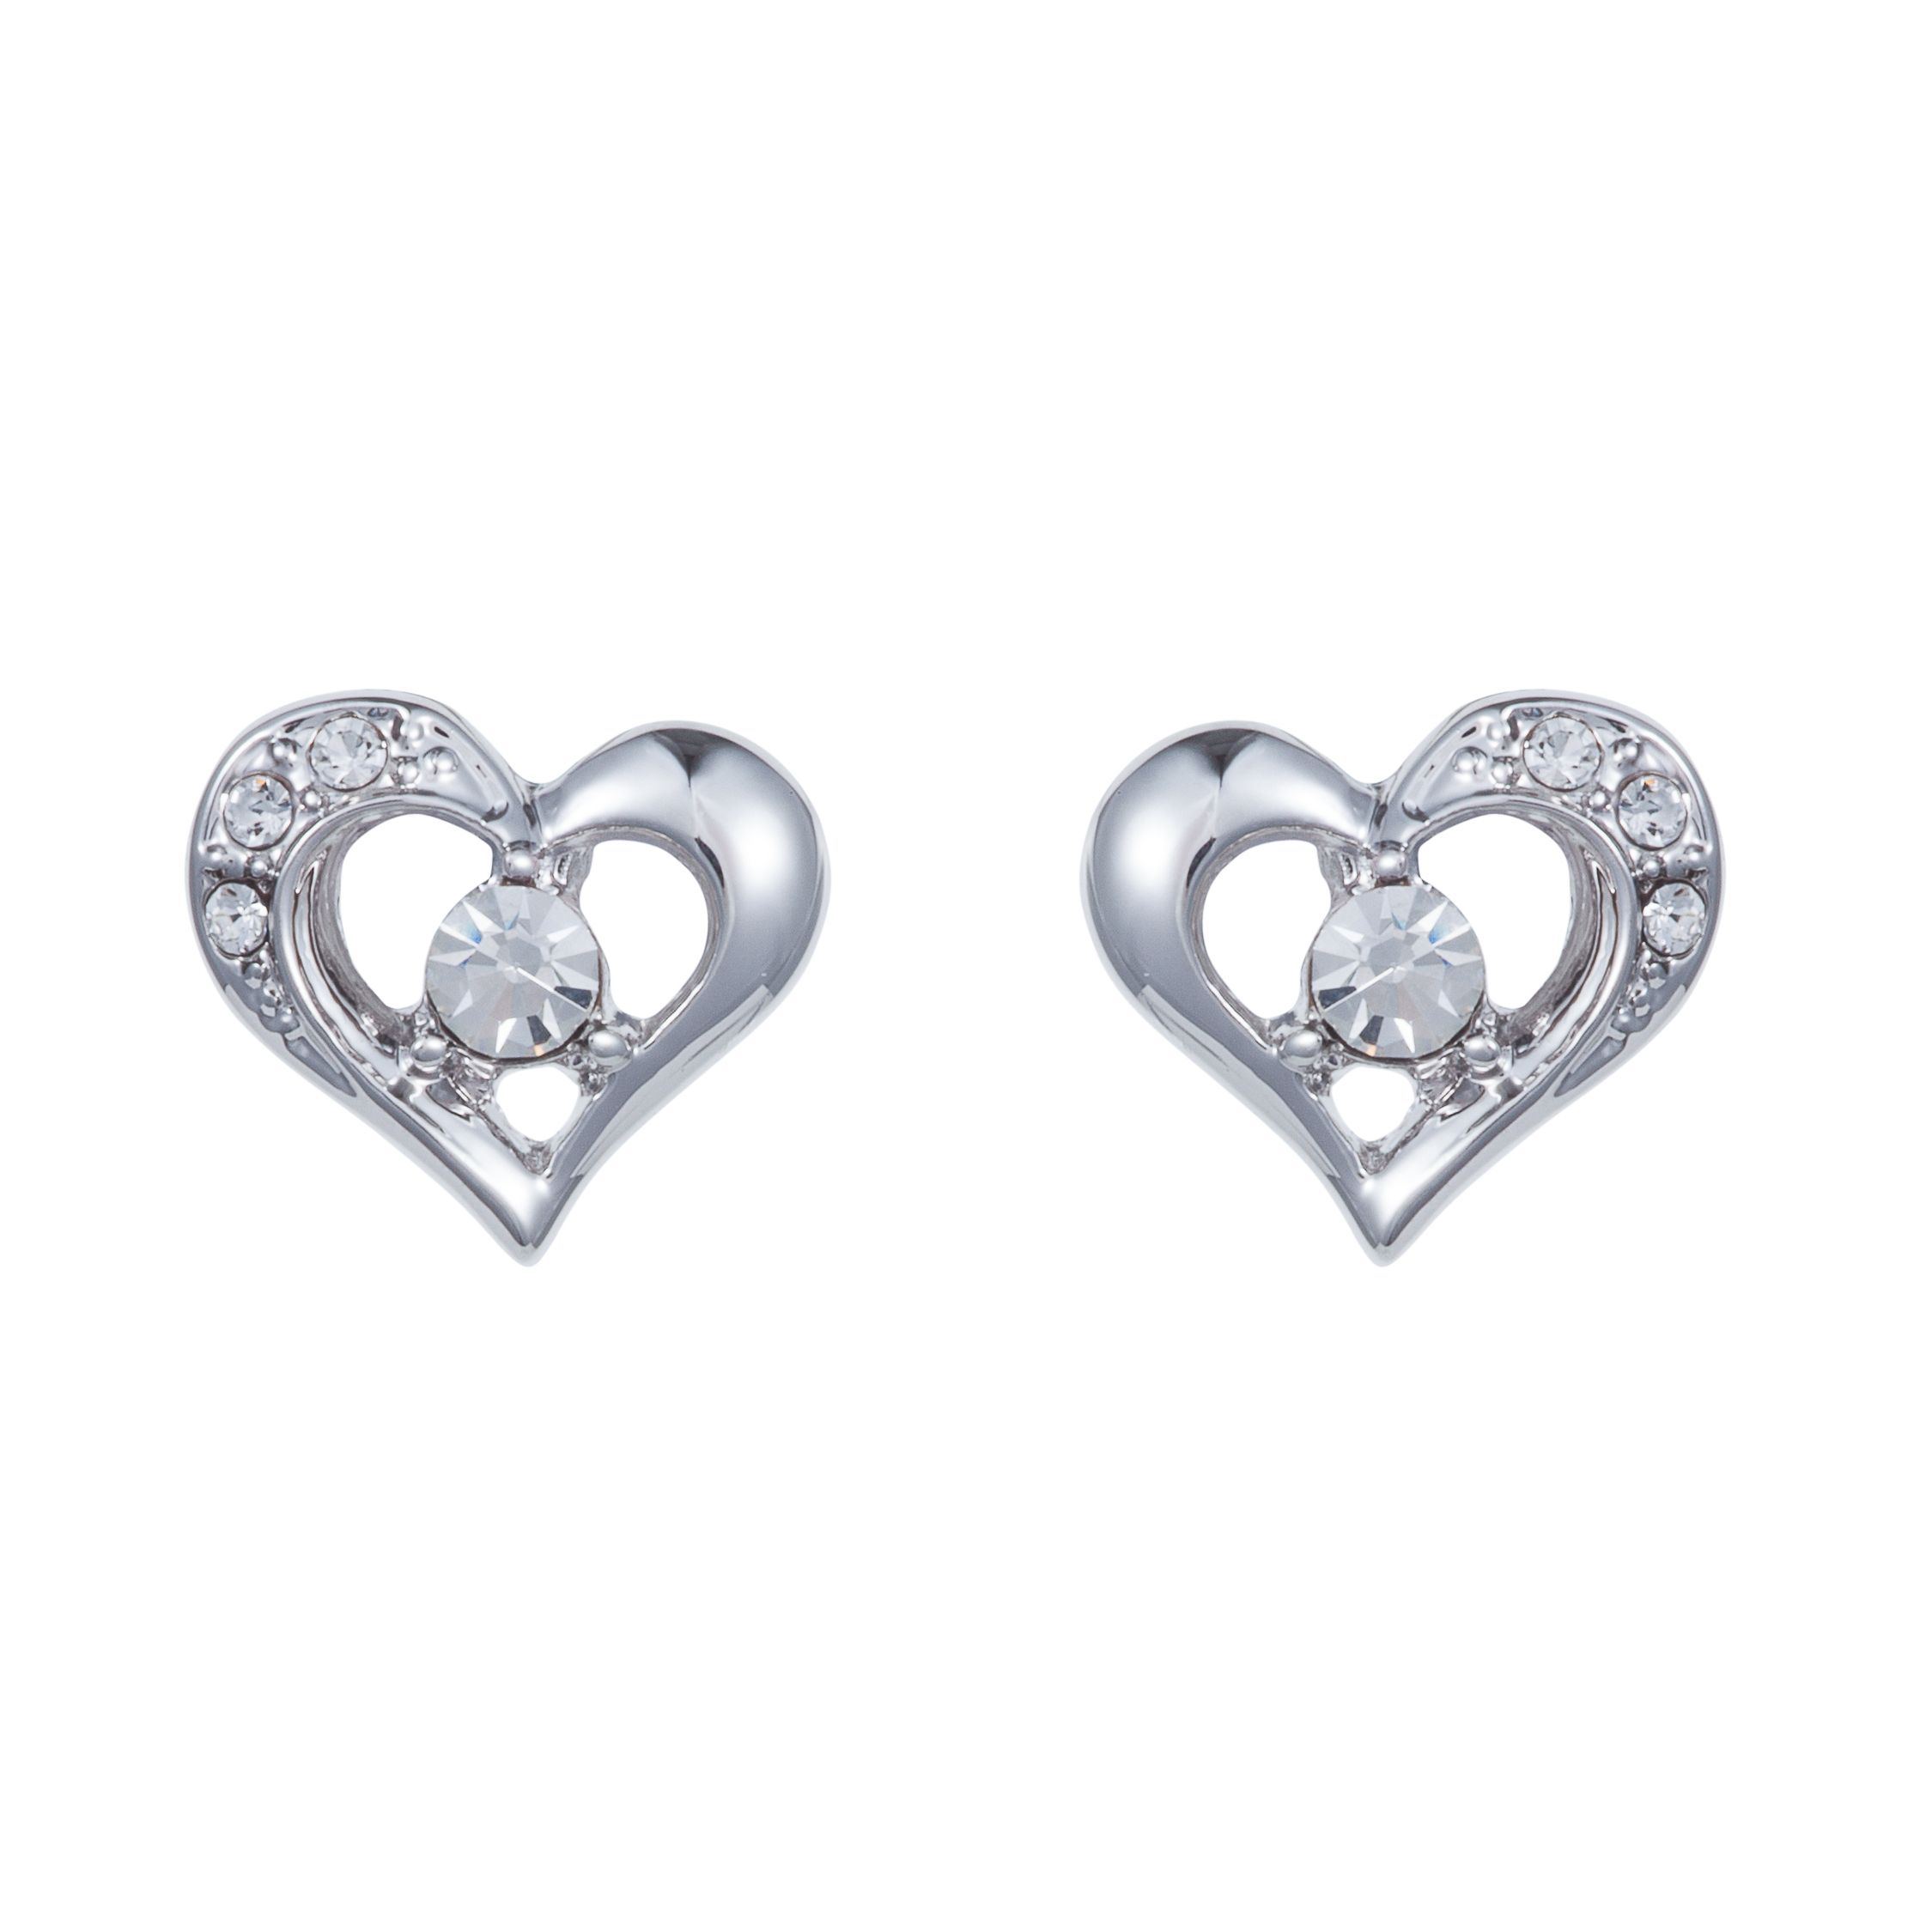 Rhodium plated heart earring